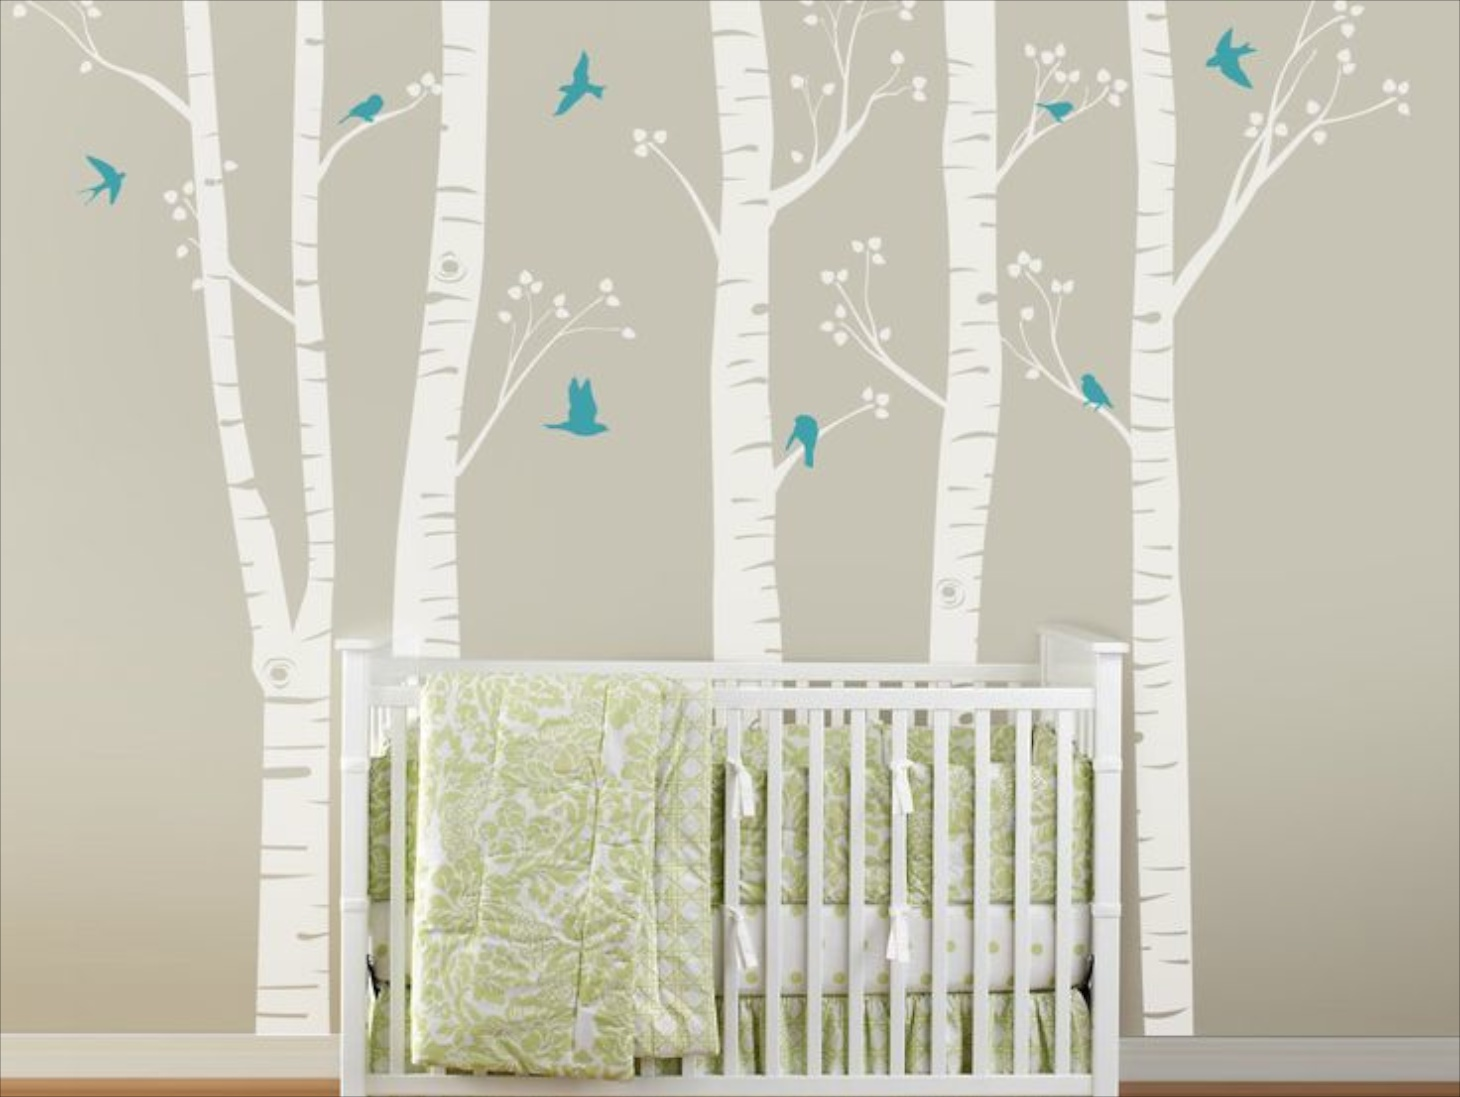 Extravagant tree branches for Birch trees mural